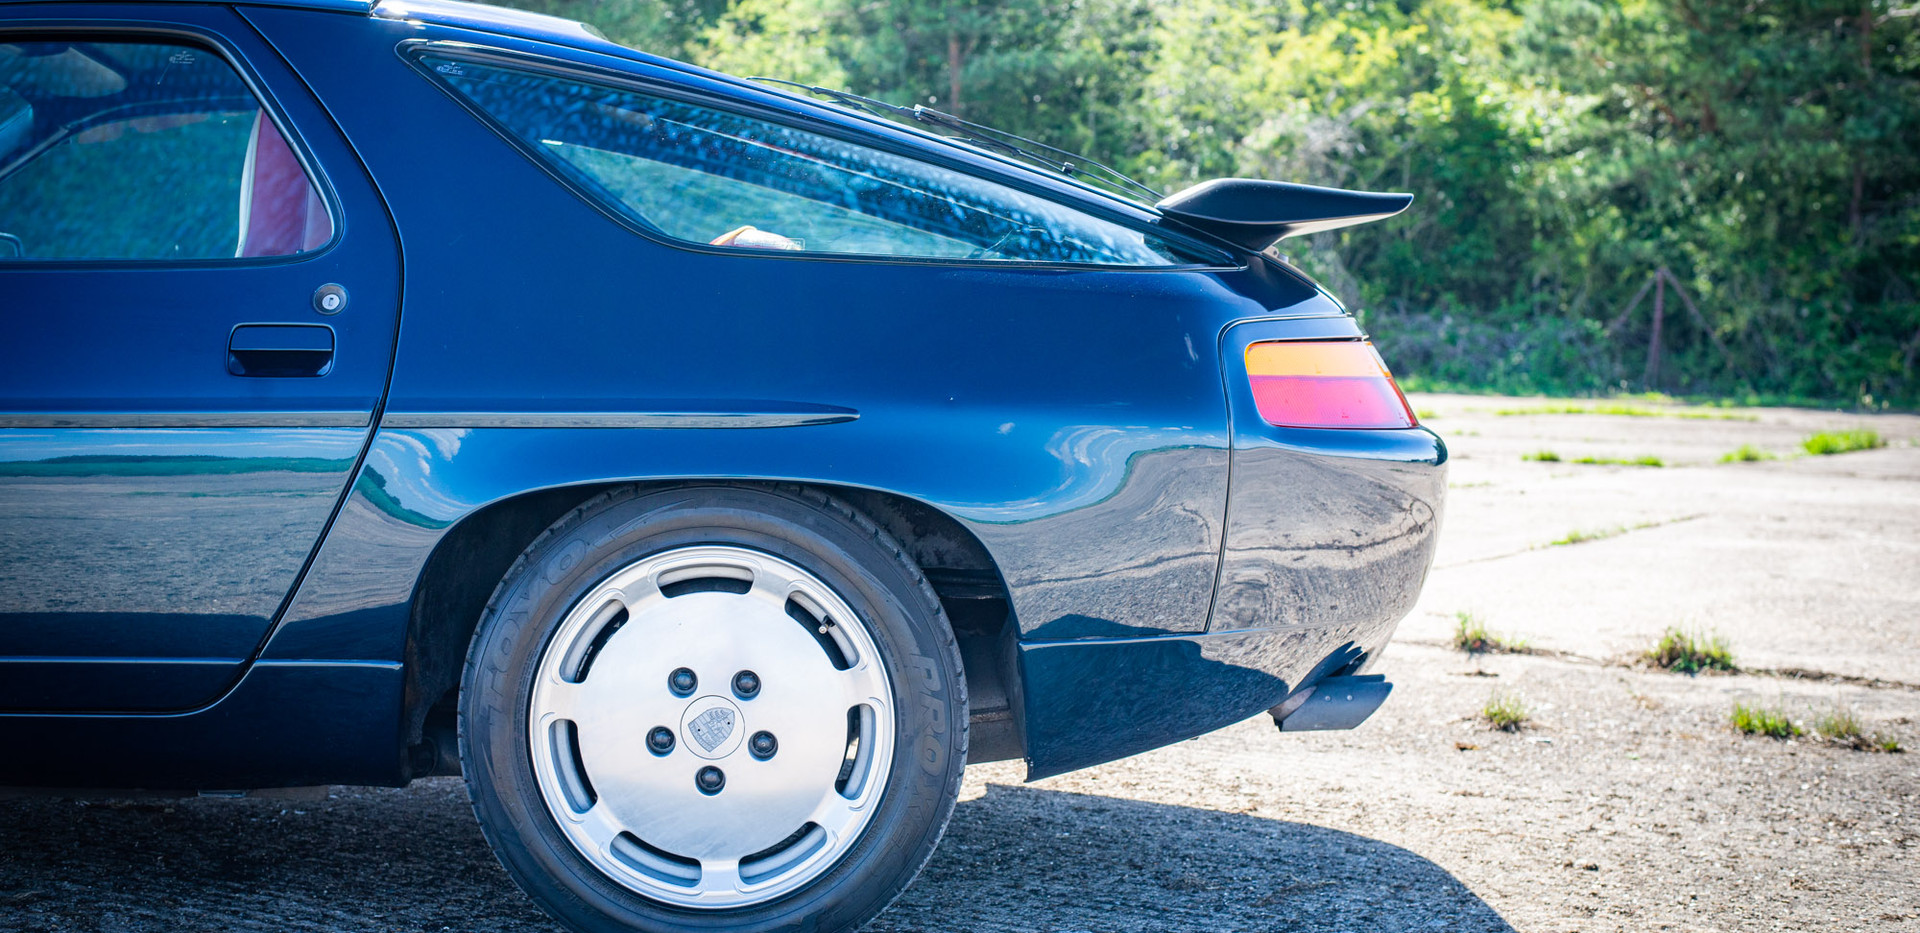 Porsche_928_ForSale Uk London-10.jpg